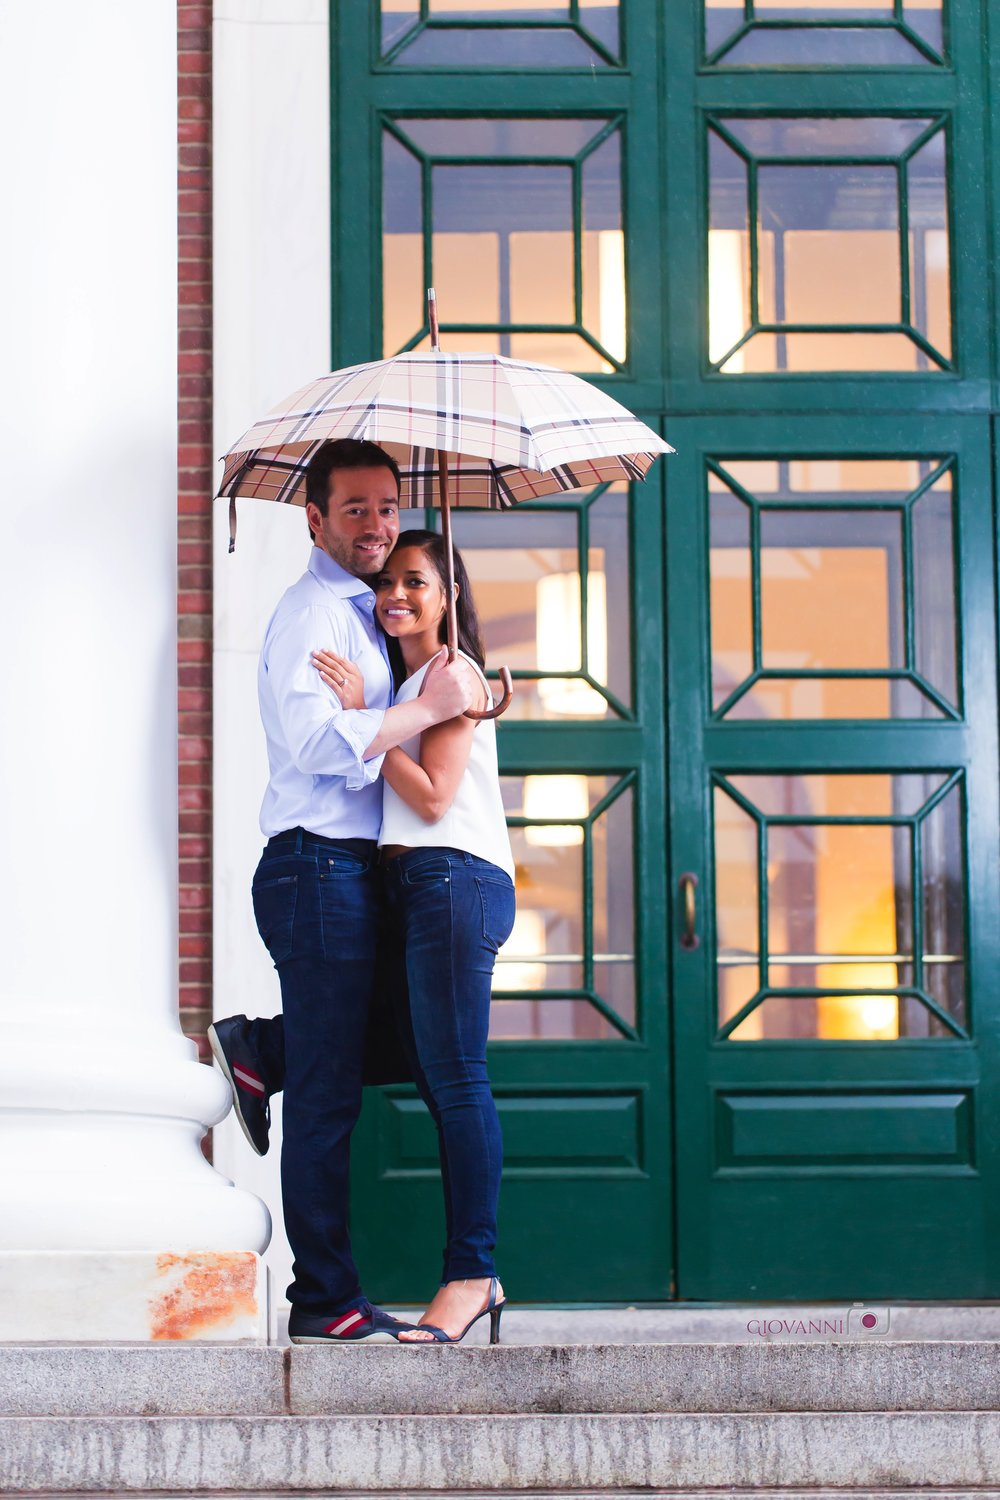 314A5906 Giovanni The Photographer Best Boston Engagement Photography Harvard Business School WM.jpg